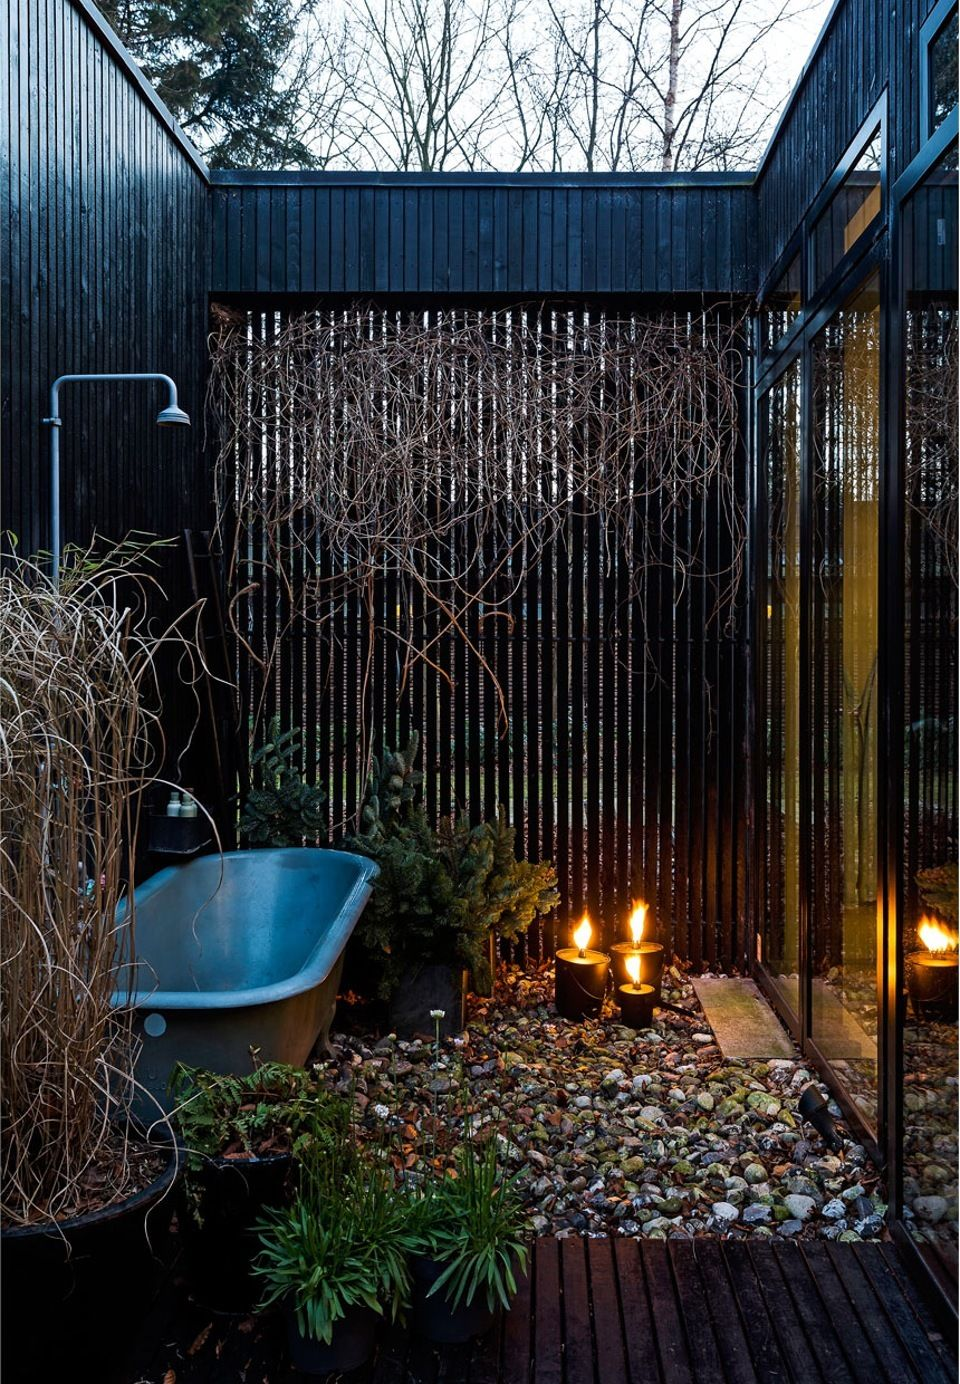 Badekar Ute Summer House With A Rustic And Cosy Outdoor Bath Featuring A